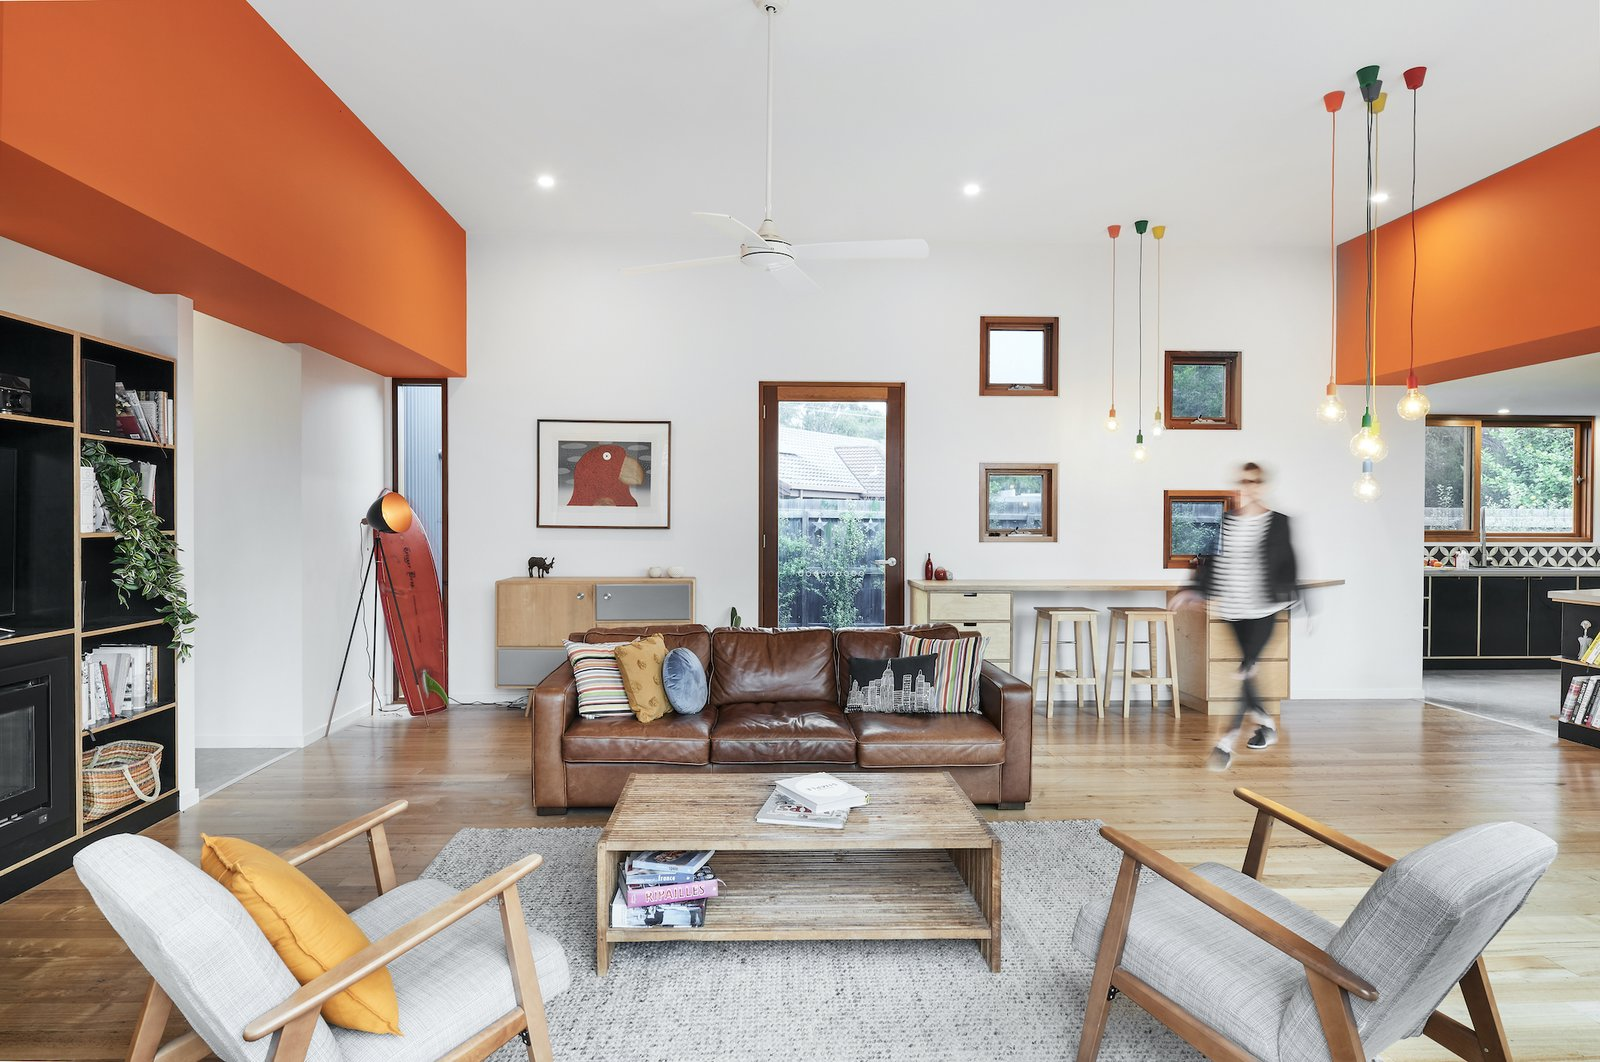 Living room at The FUN House by Nine Muses Architecture & Design.